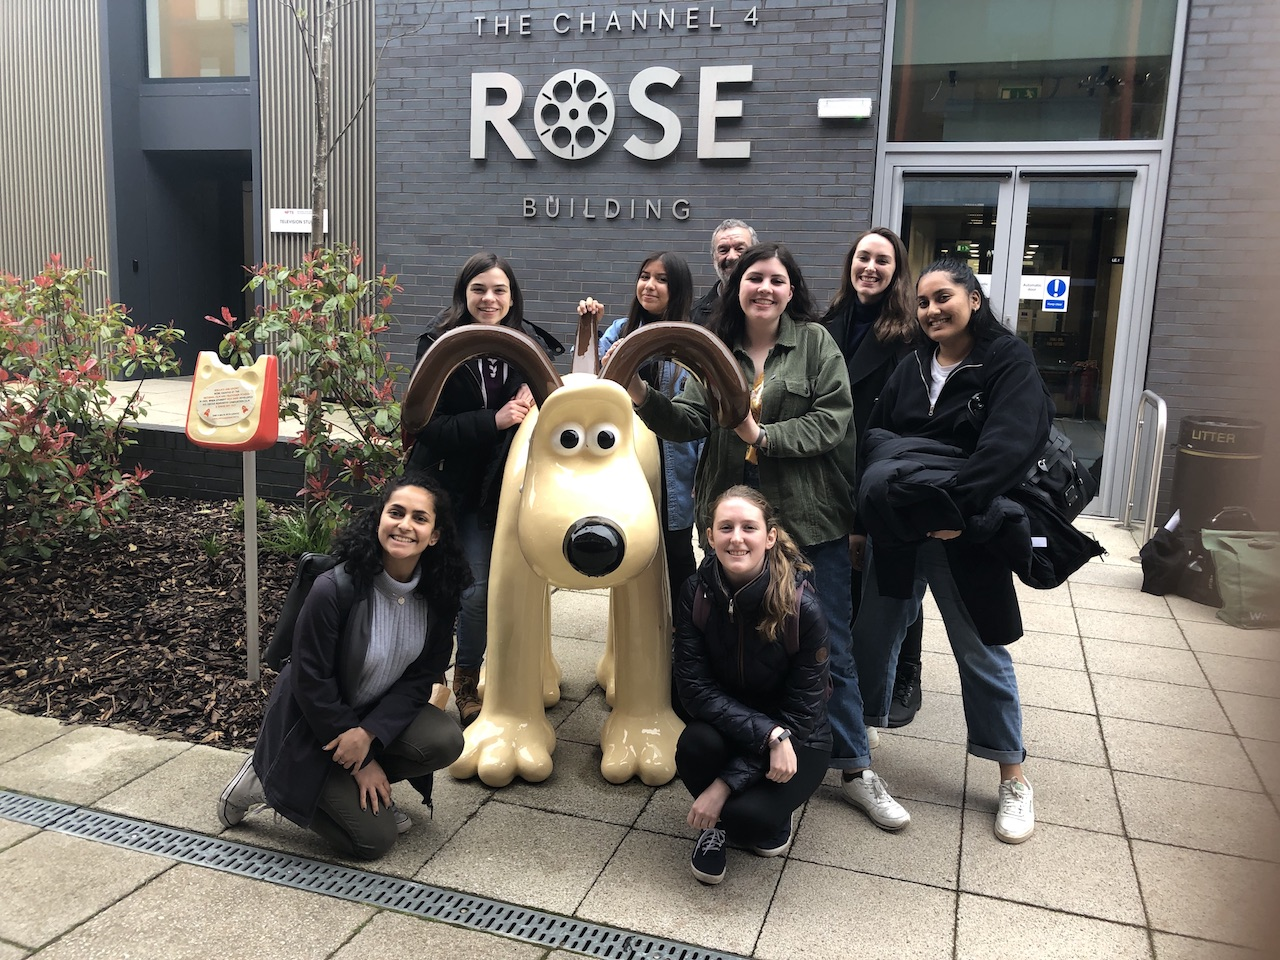 Group photo of the spring 2019 class with a statue of Gromit in front of the Channel 4 Rose Building